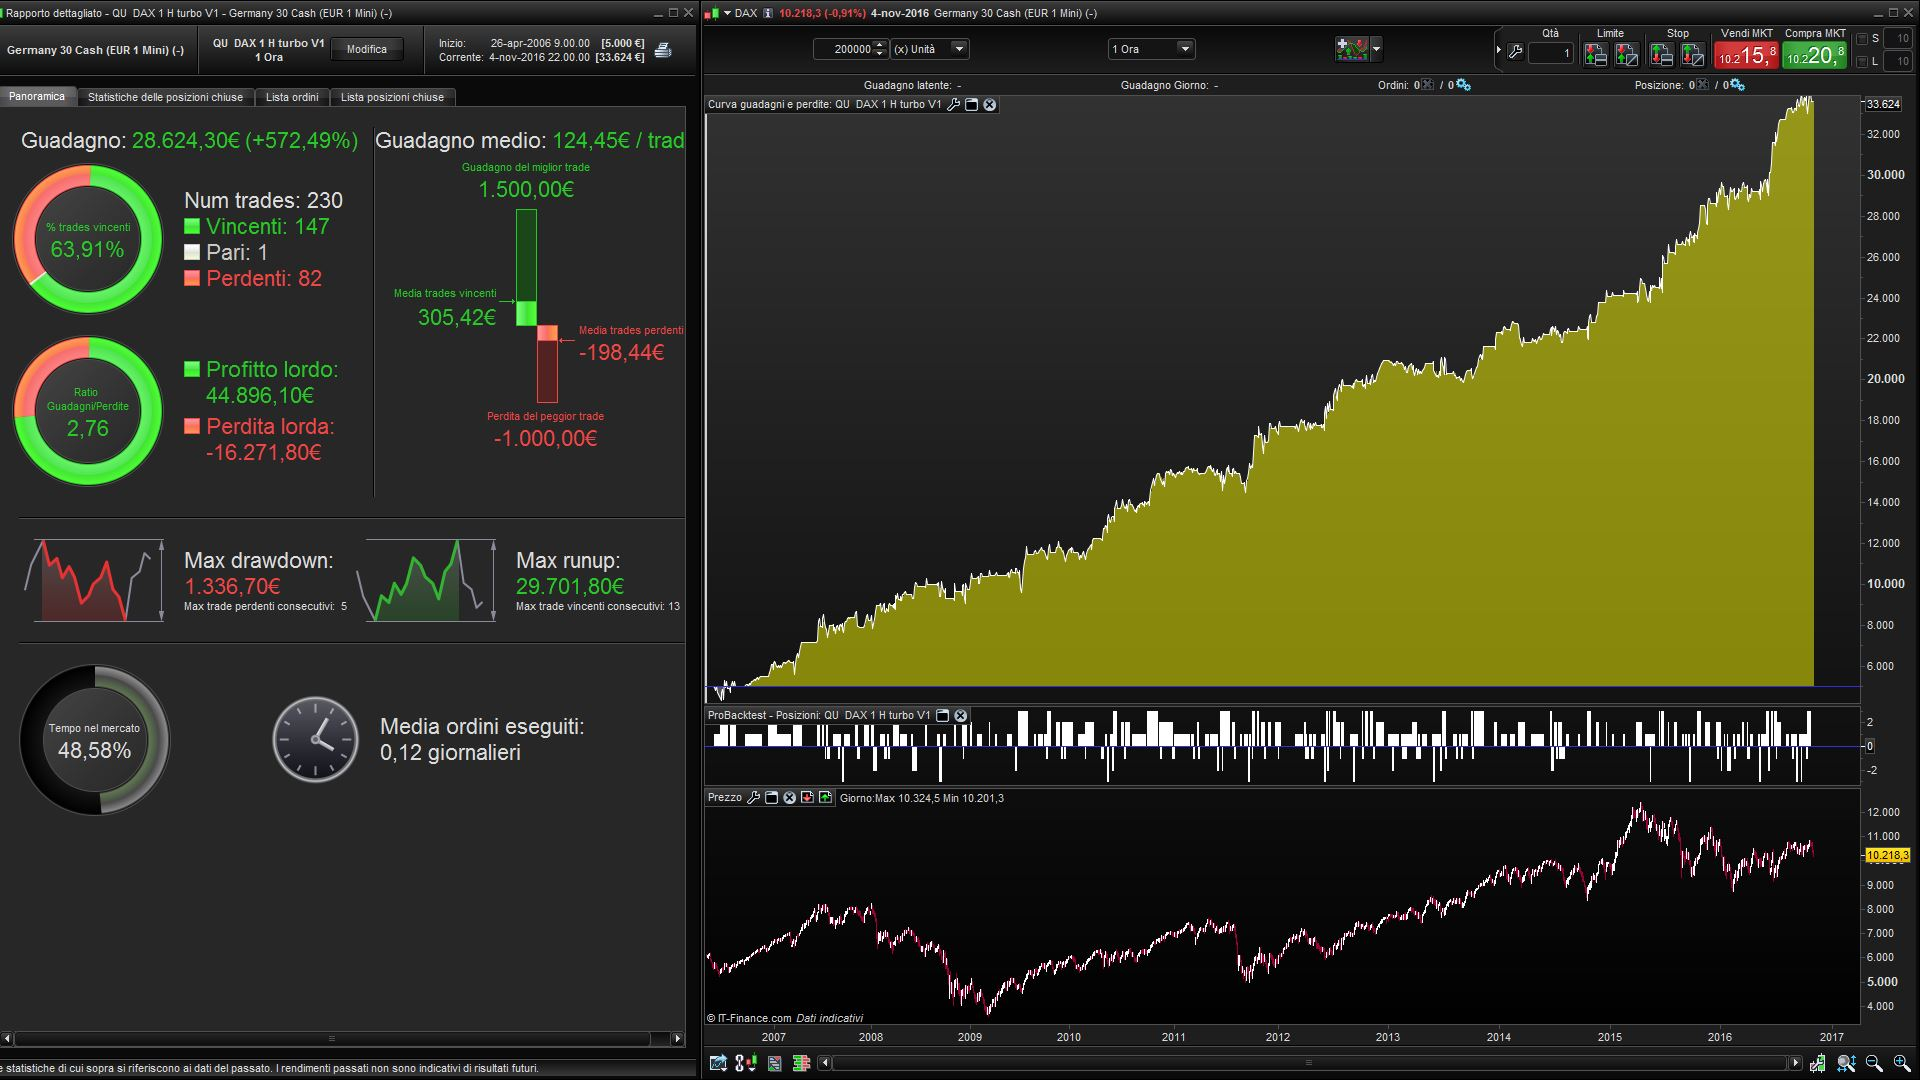 Share Trading Vs Cfd Qu Trading Strategy Dax Indices Cfd Strategies